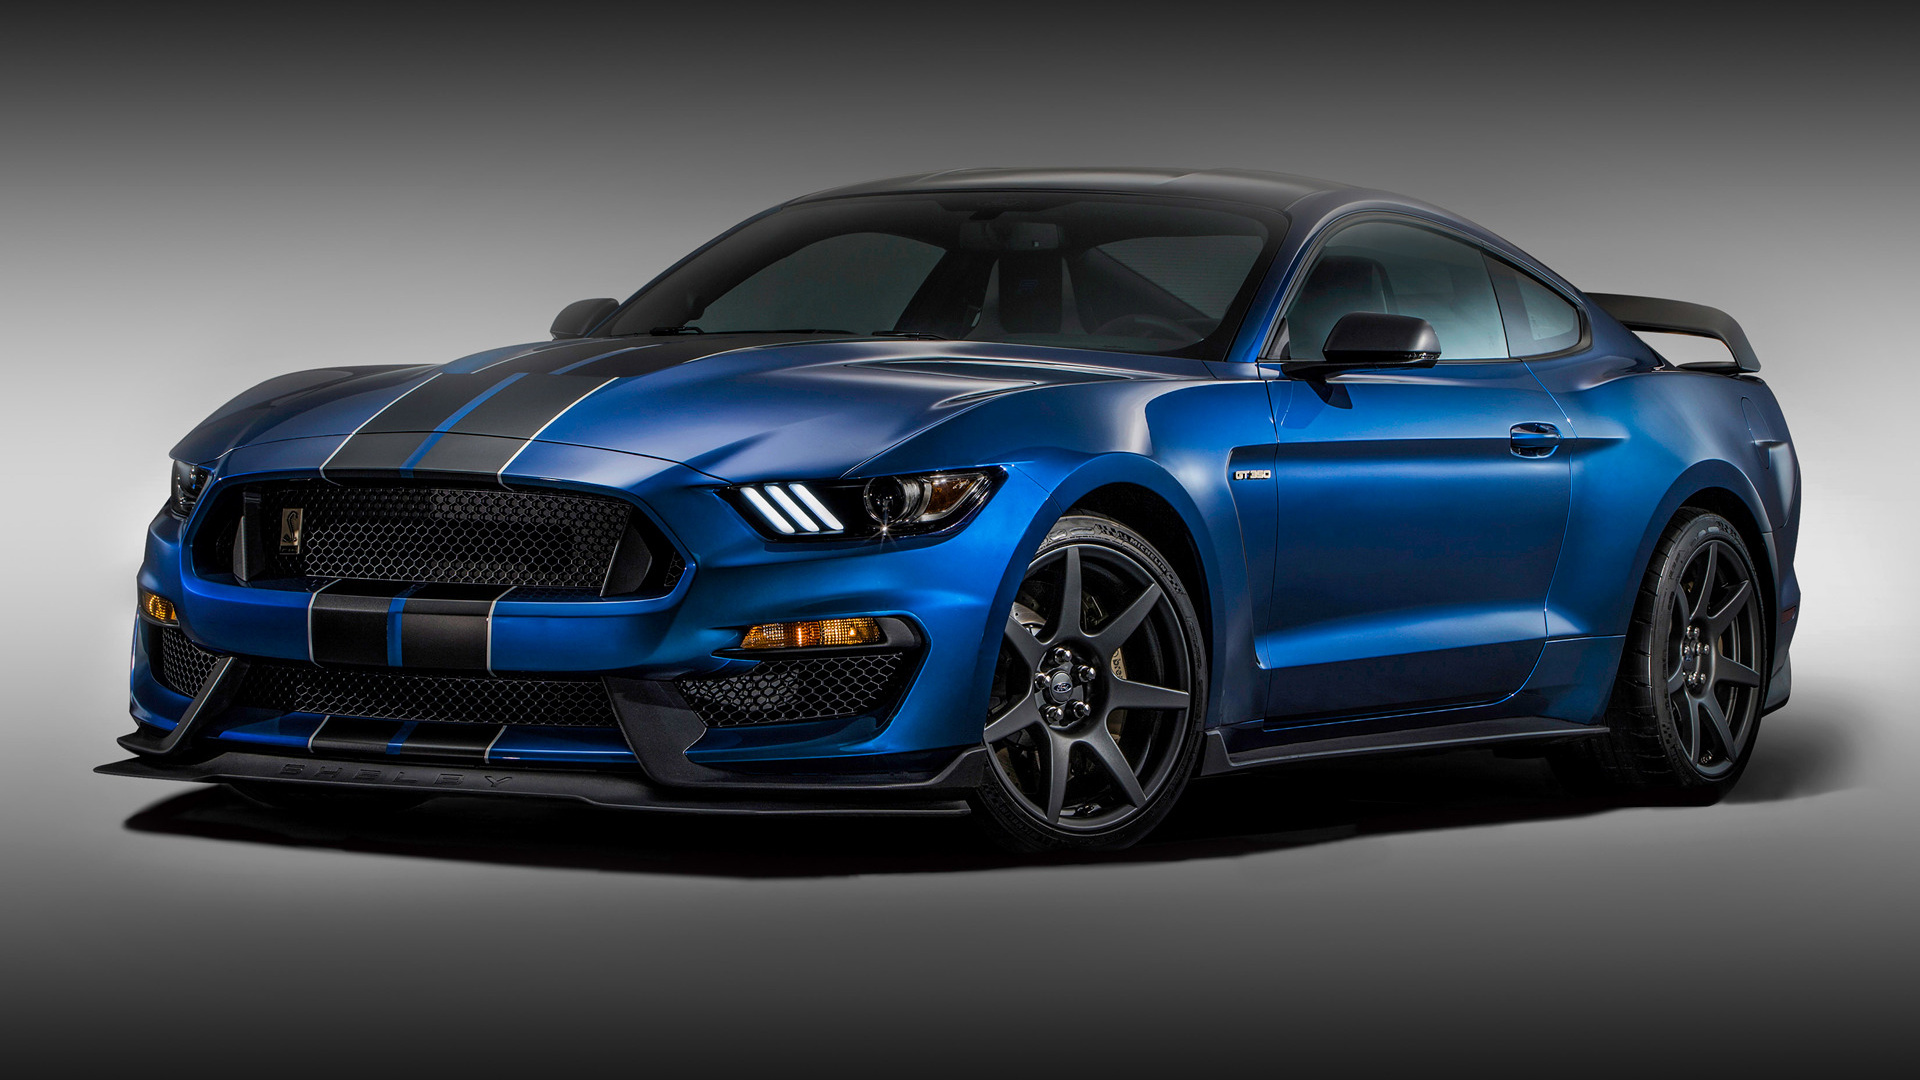 Shelby GT350R Mustang (2016) Wallpapers and HD Images ...